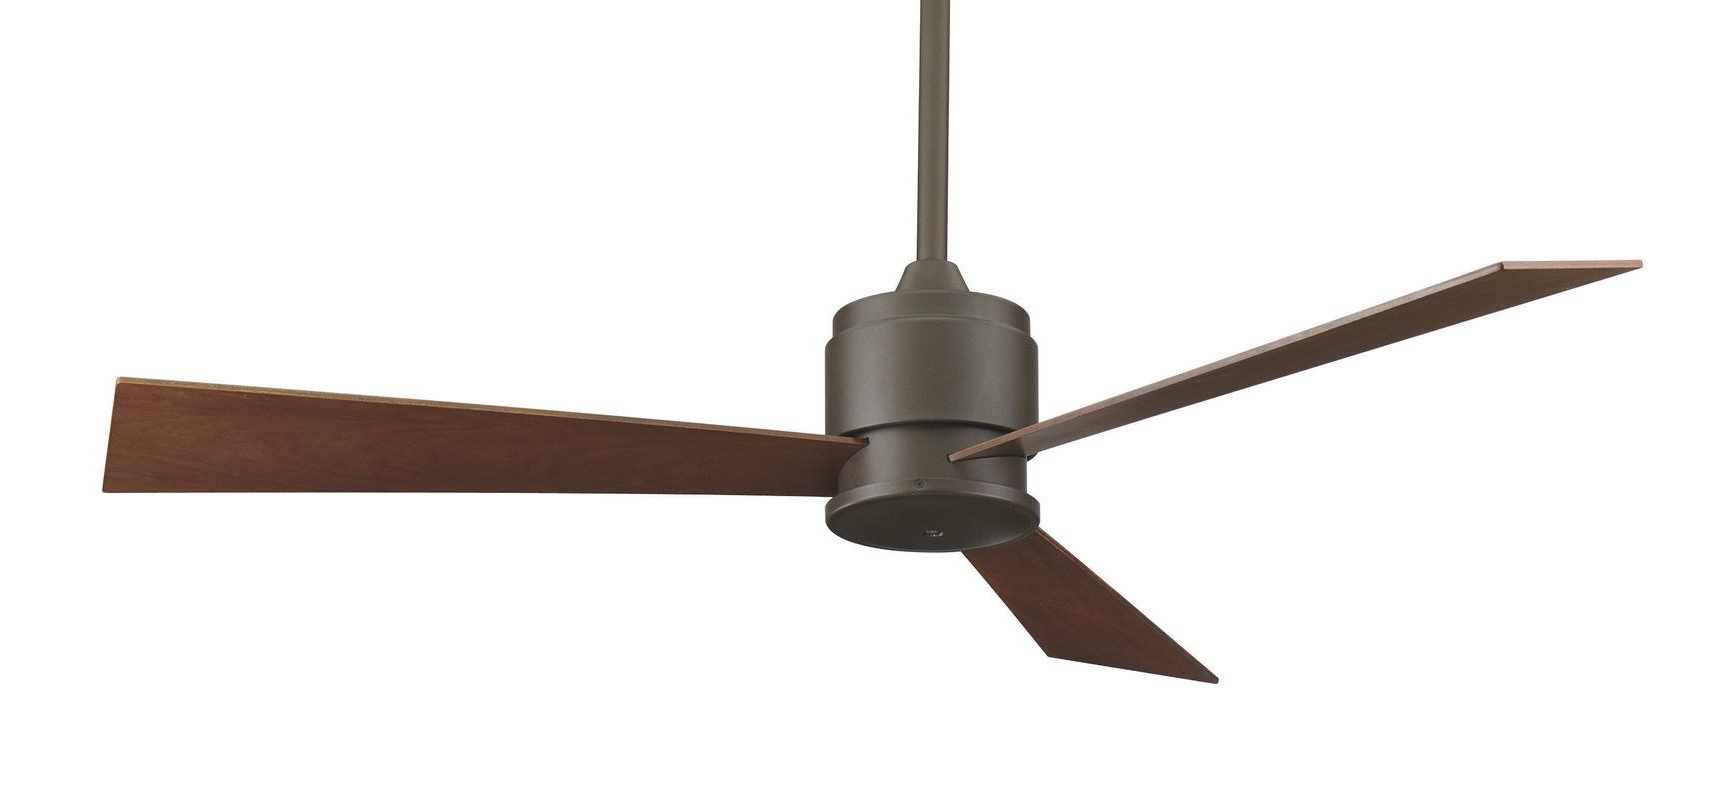 Sunnyside Bierman Residence Pertaining To 2020 Defelice 3 Blade Ceiling Fans (View 17 of 20)